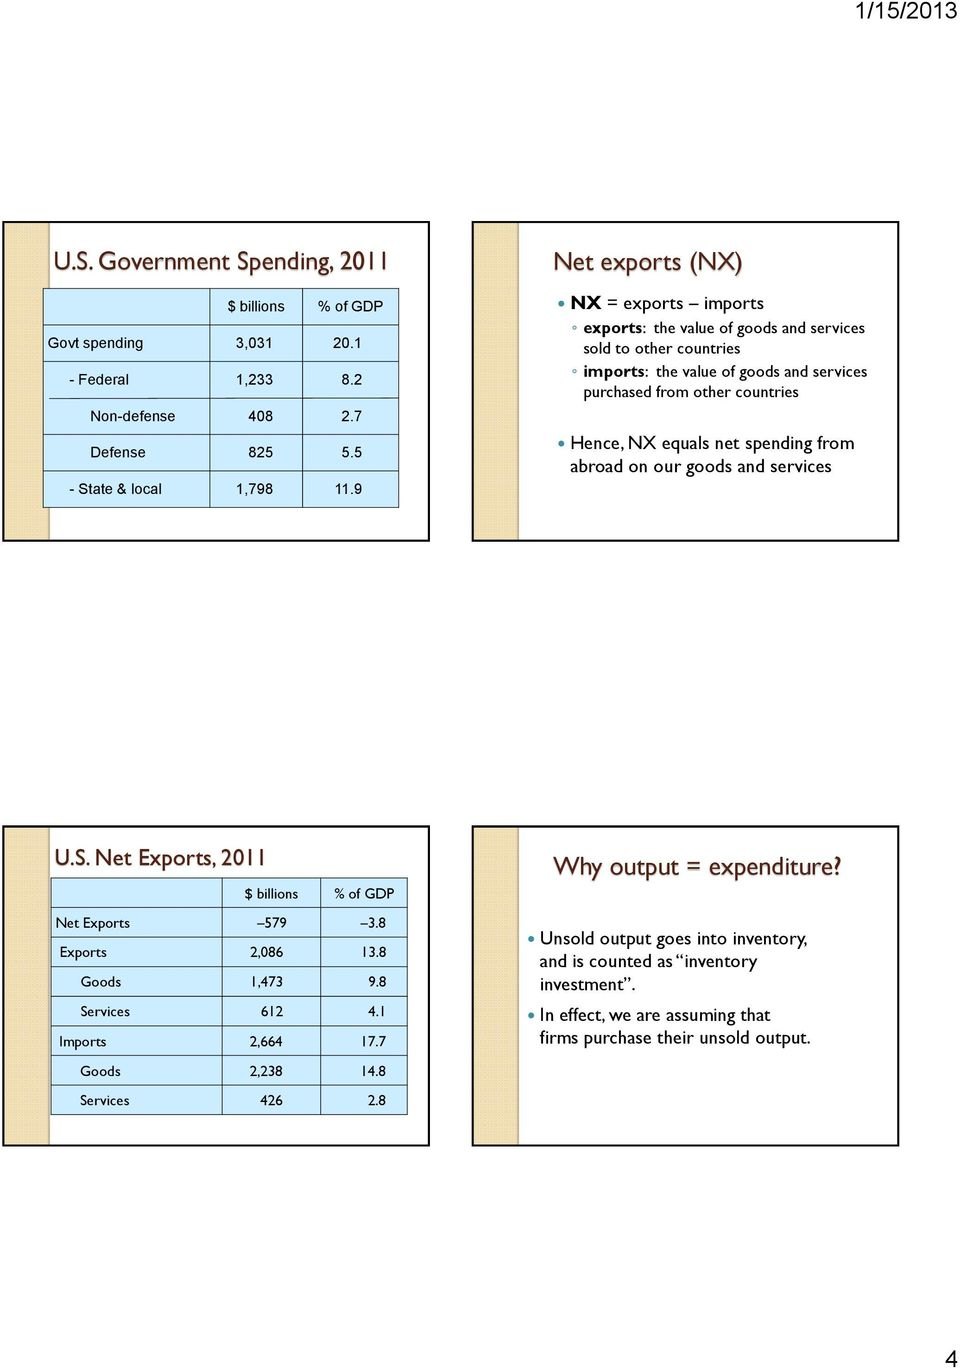 spending from abroad on our goods and services U.S. Net Exports, 2011 $ billions % of GDP Net Exports 579 3.8 Exports 2,086 13.8 Goods 1,473 9.8 Services 612 4.1 Imports 2,664 17.